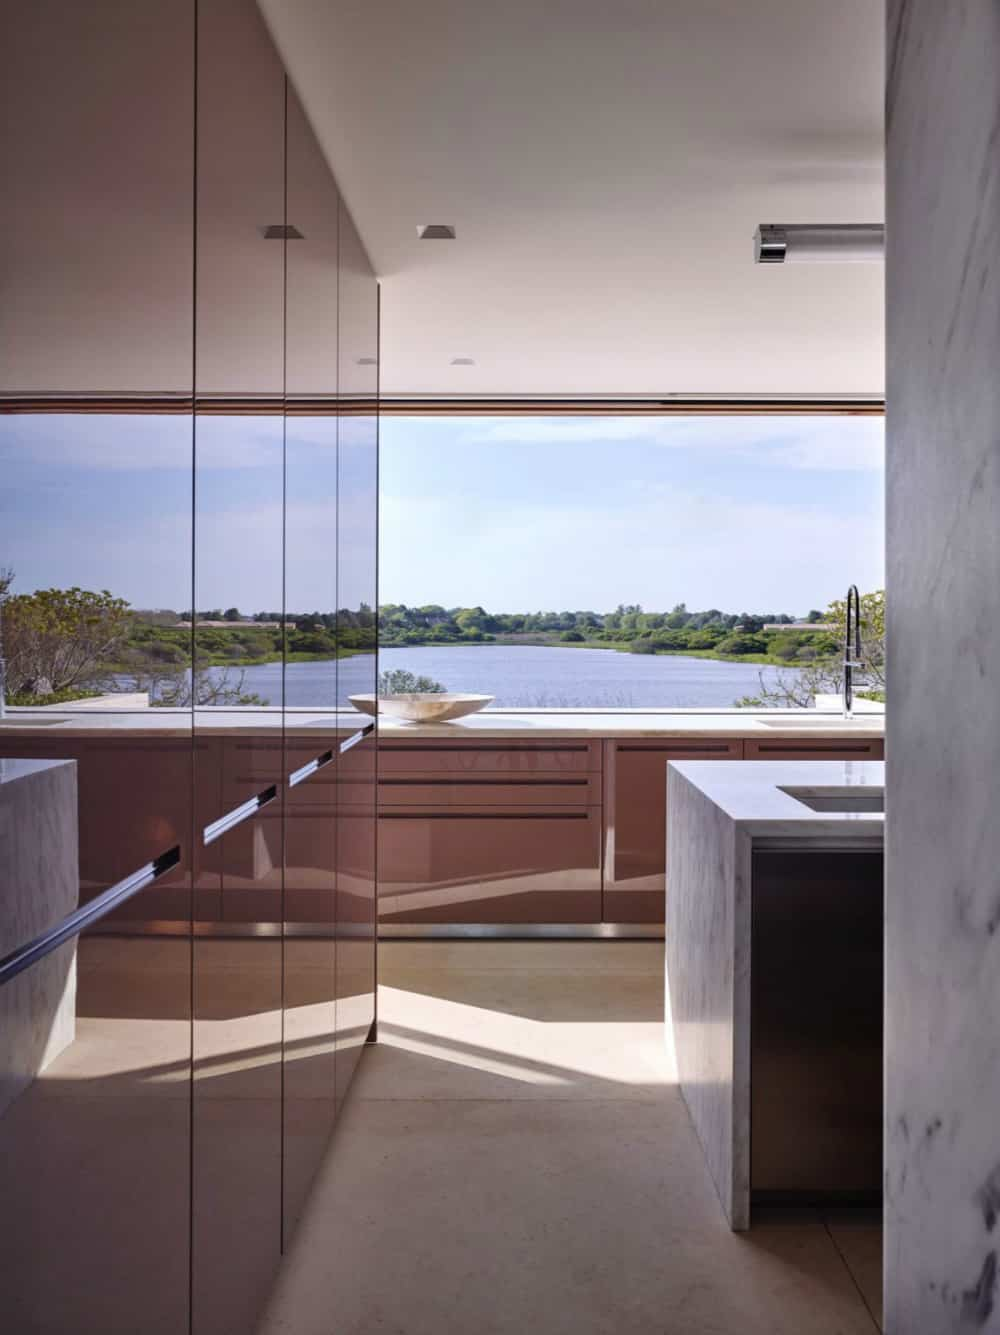 Kitchen is full of light and views